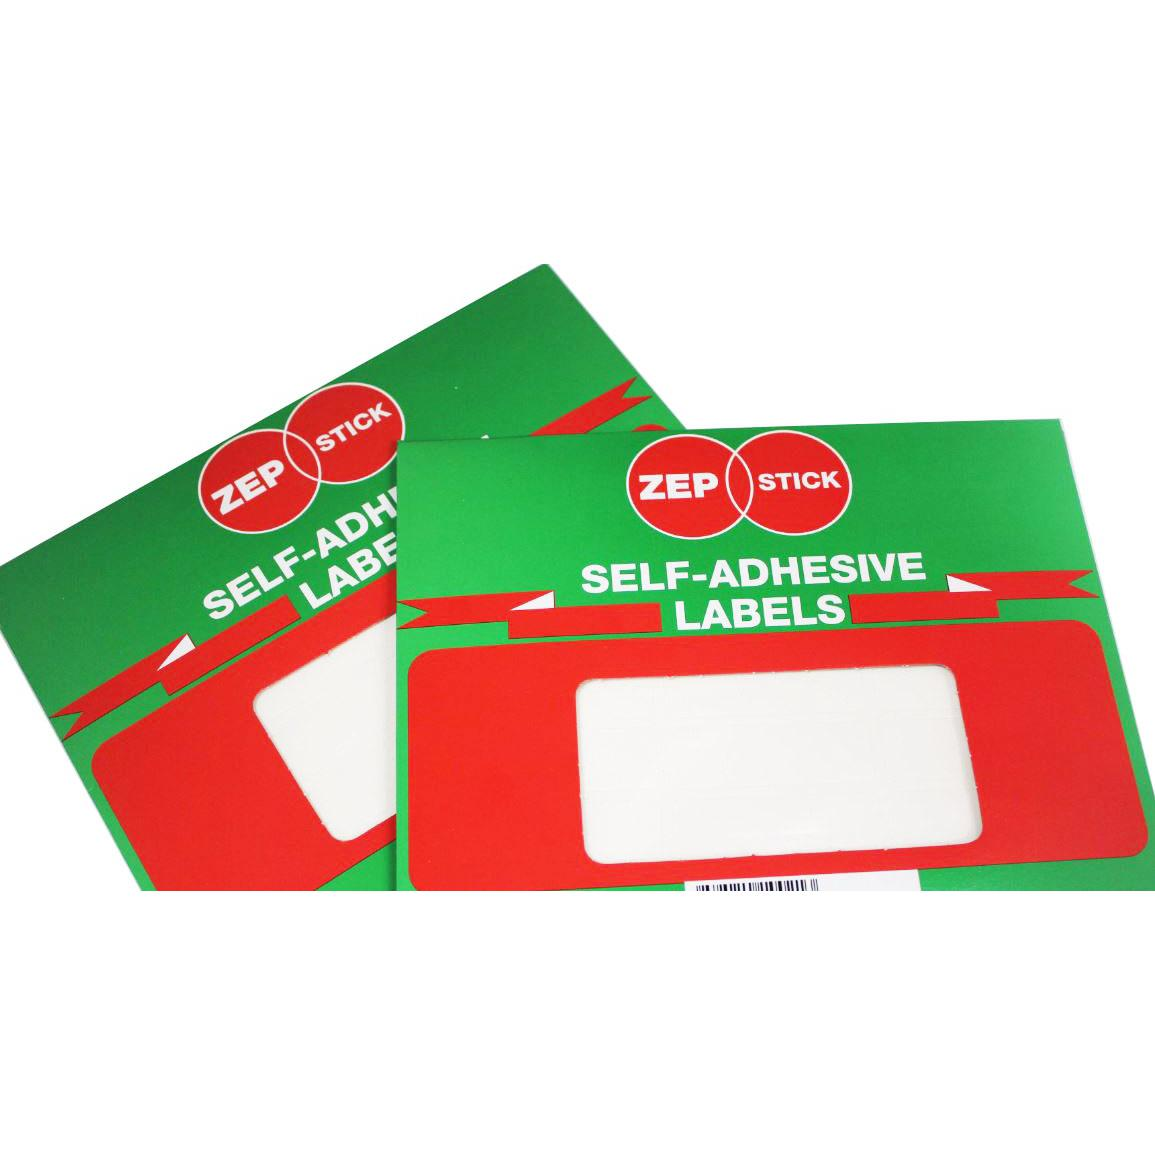 Zepstick Self Adhesive White Labels 9 x 13mm 0913